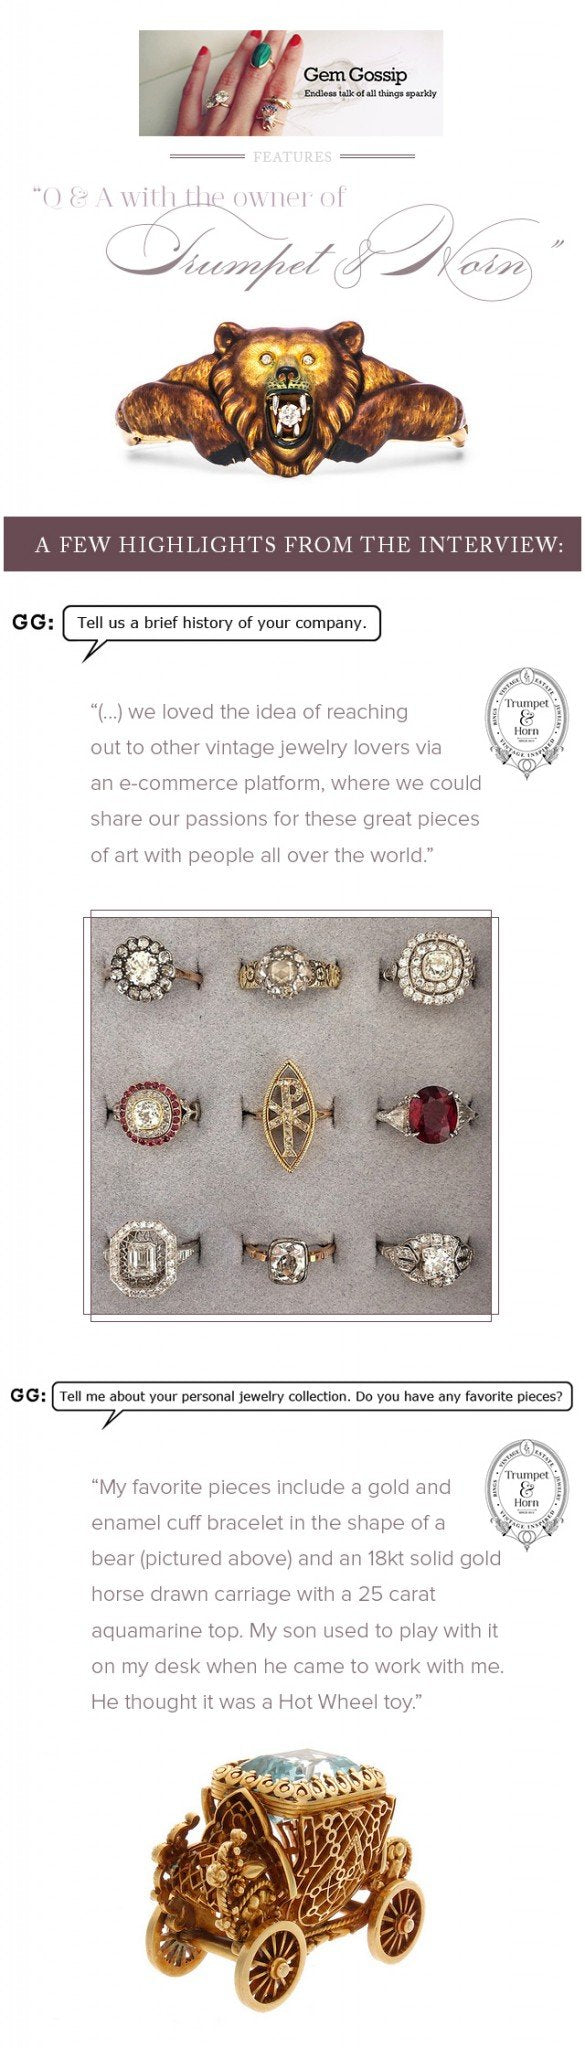 T&H Featured on Gem Gossip Jewelry Blog!